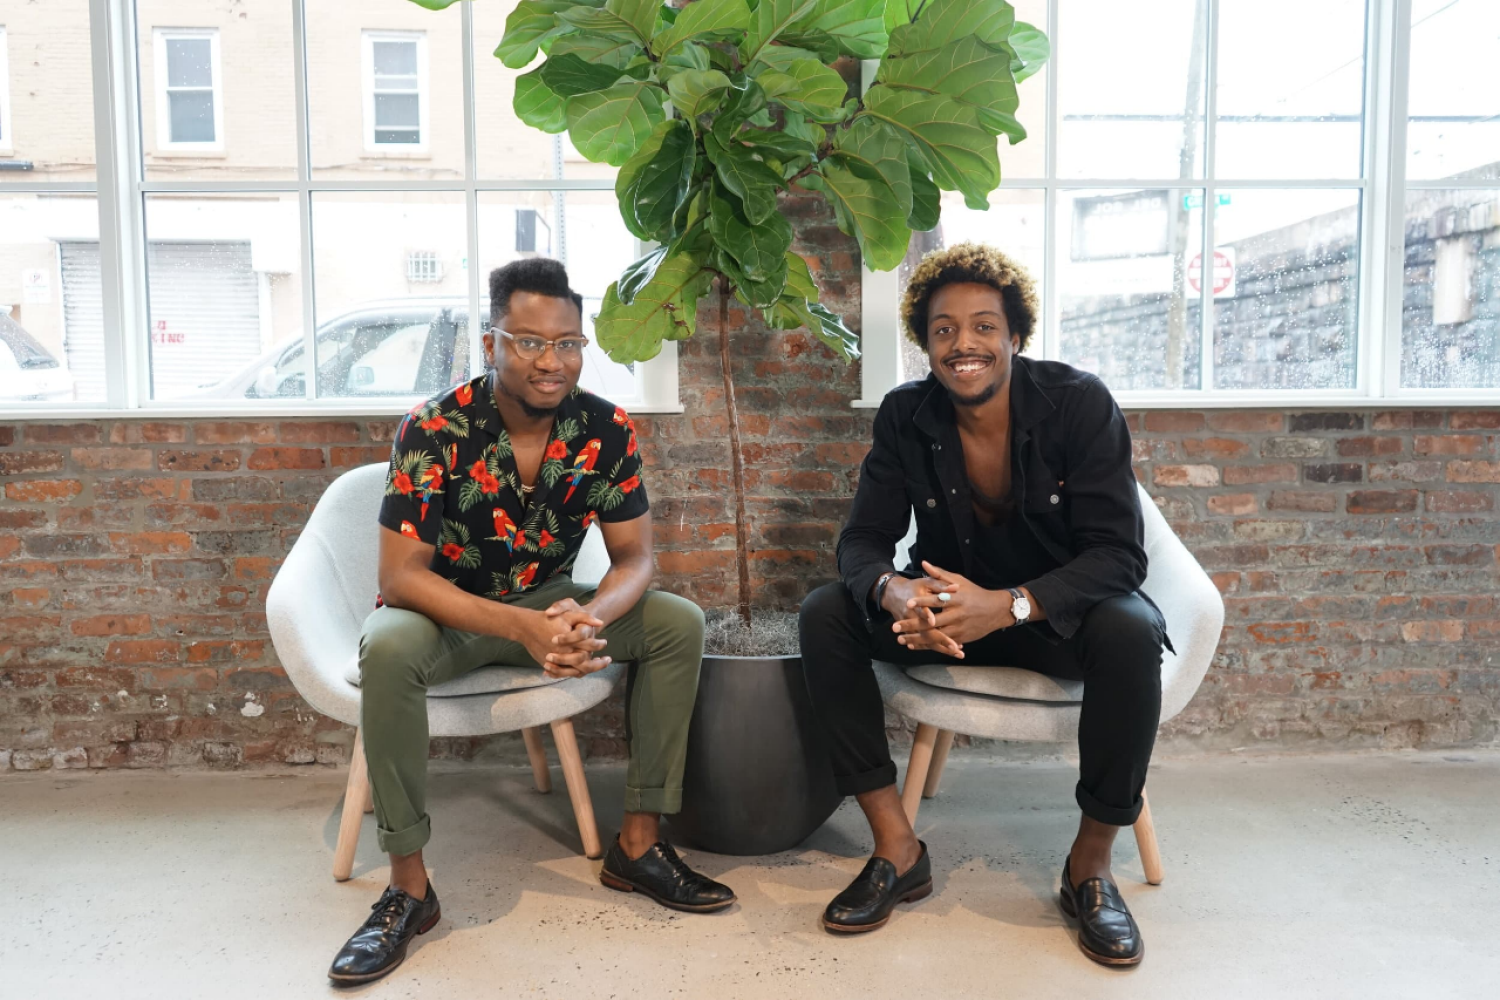 Ivan Alo and LaDante McMillon sitting in their office in front of a large plant